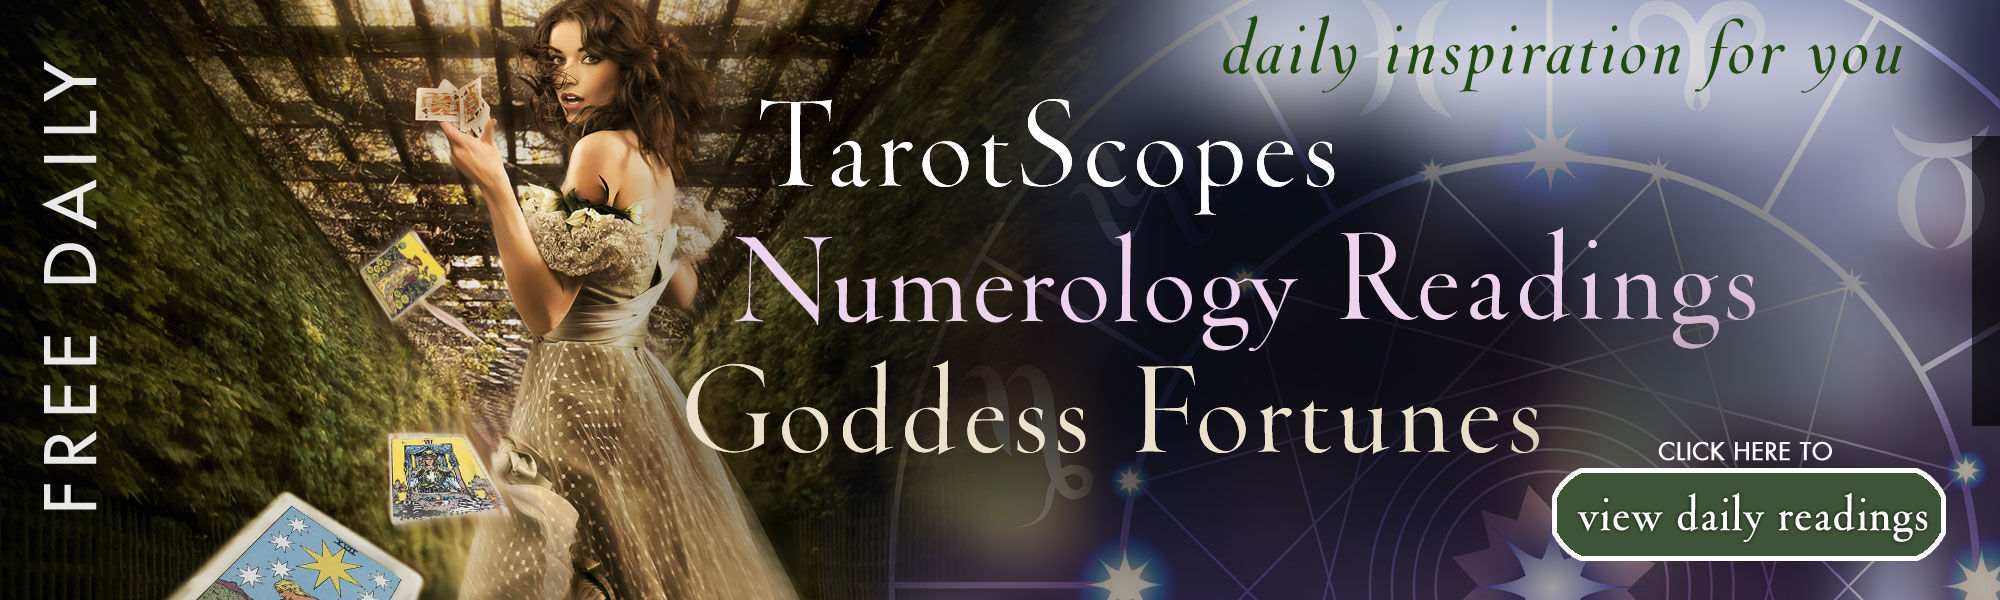 Free daily TarotScope, birthday, and goddess readings